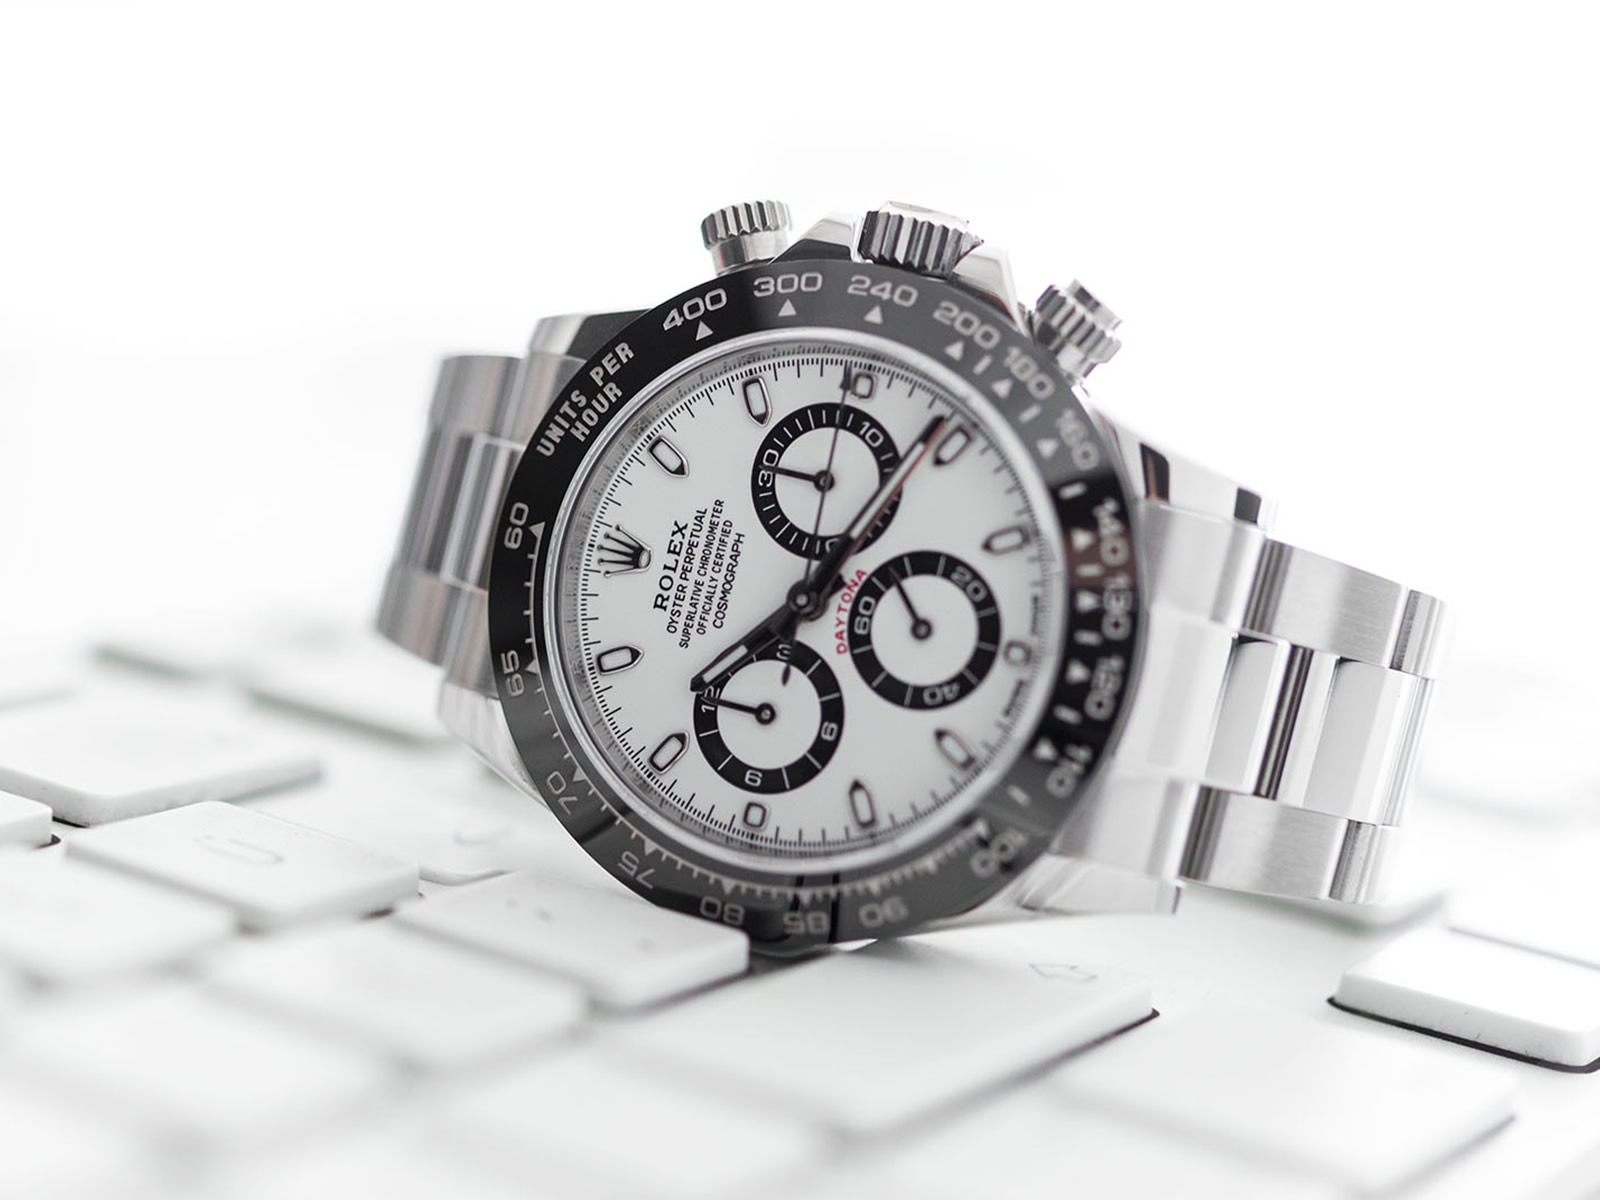 116500-rolex-oyster-perpetual-cosmograph-daytona-1-.jpg